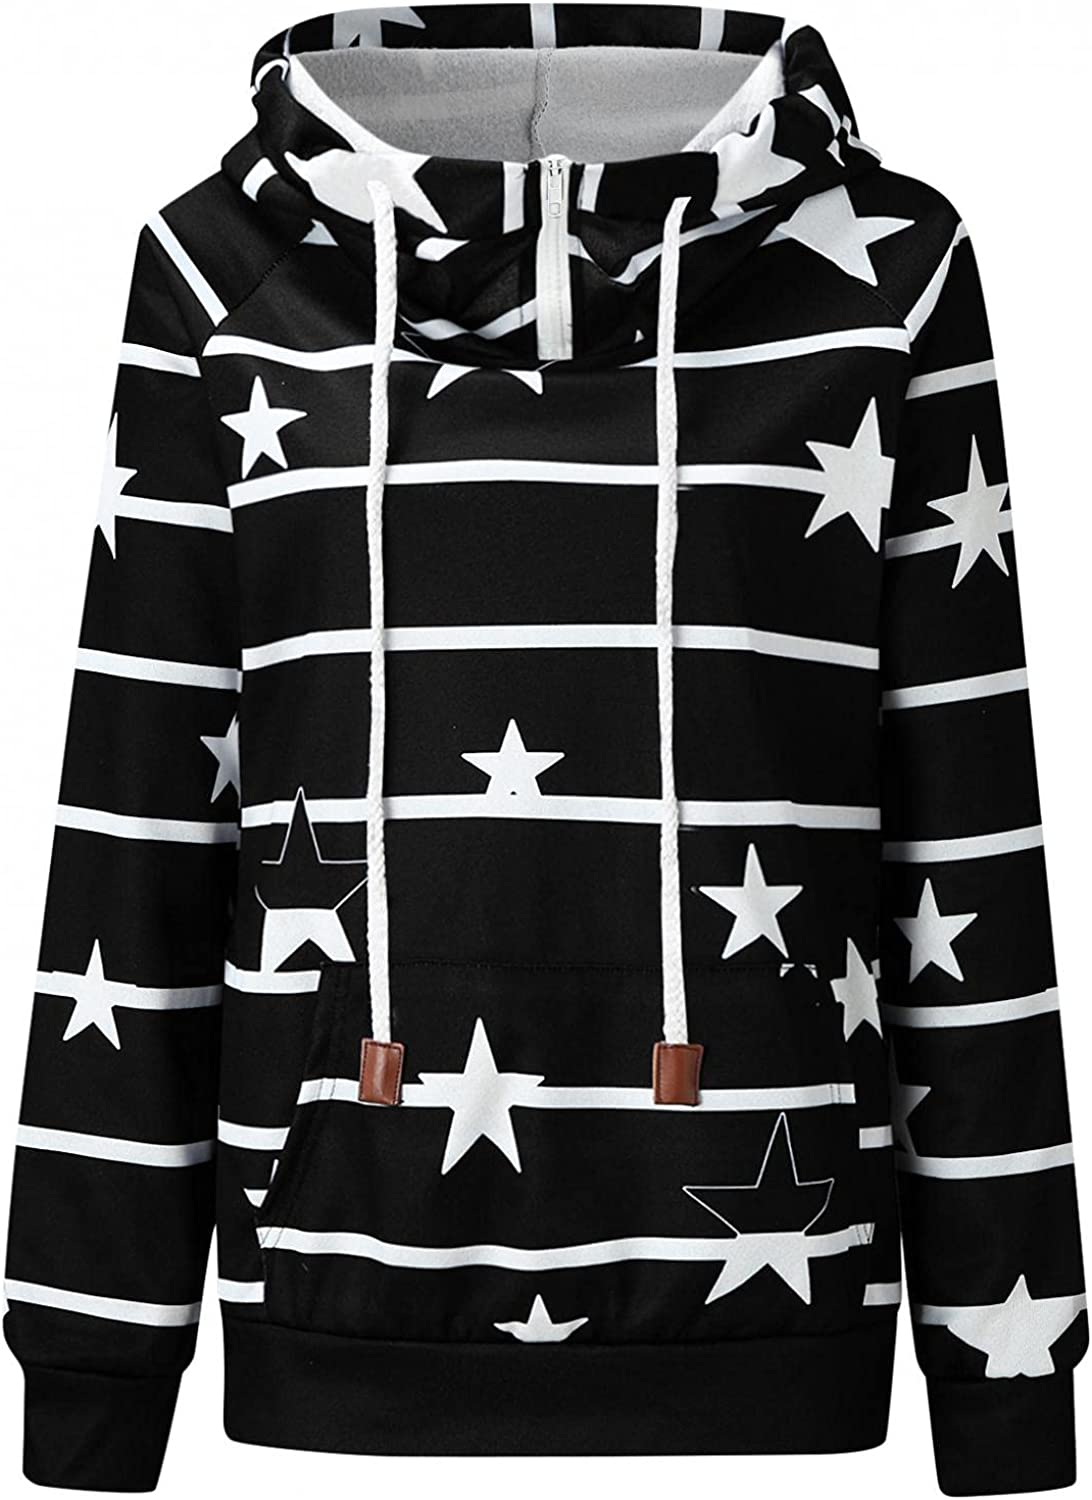 FABIURT Hoodies for Women, Womens 1/4 Zip High Collar Hoodies Fashion Striped Casual Loose Fit Long Sleeve Pullover Tops